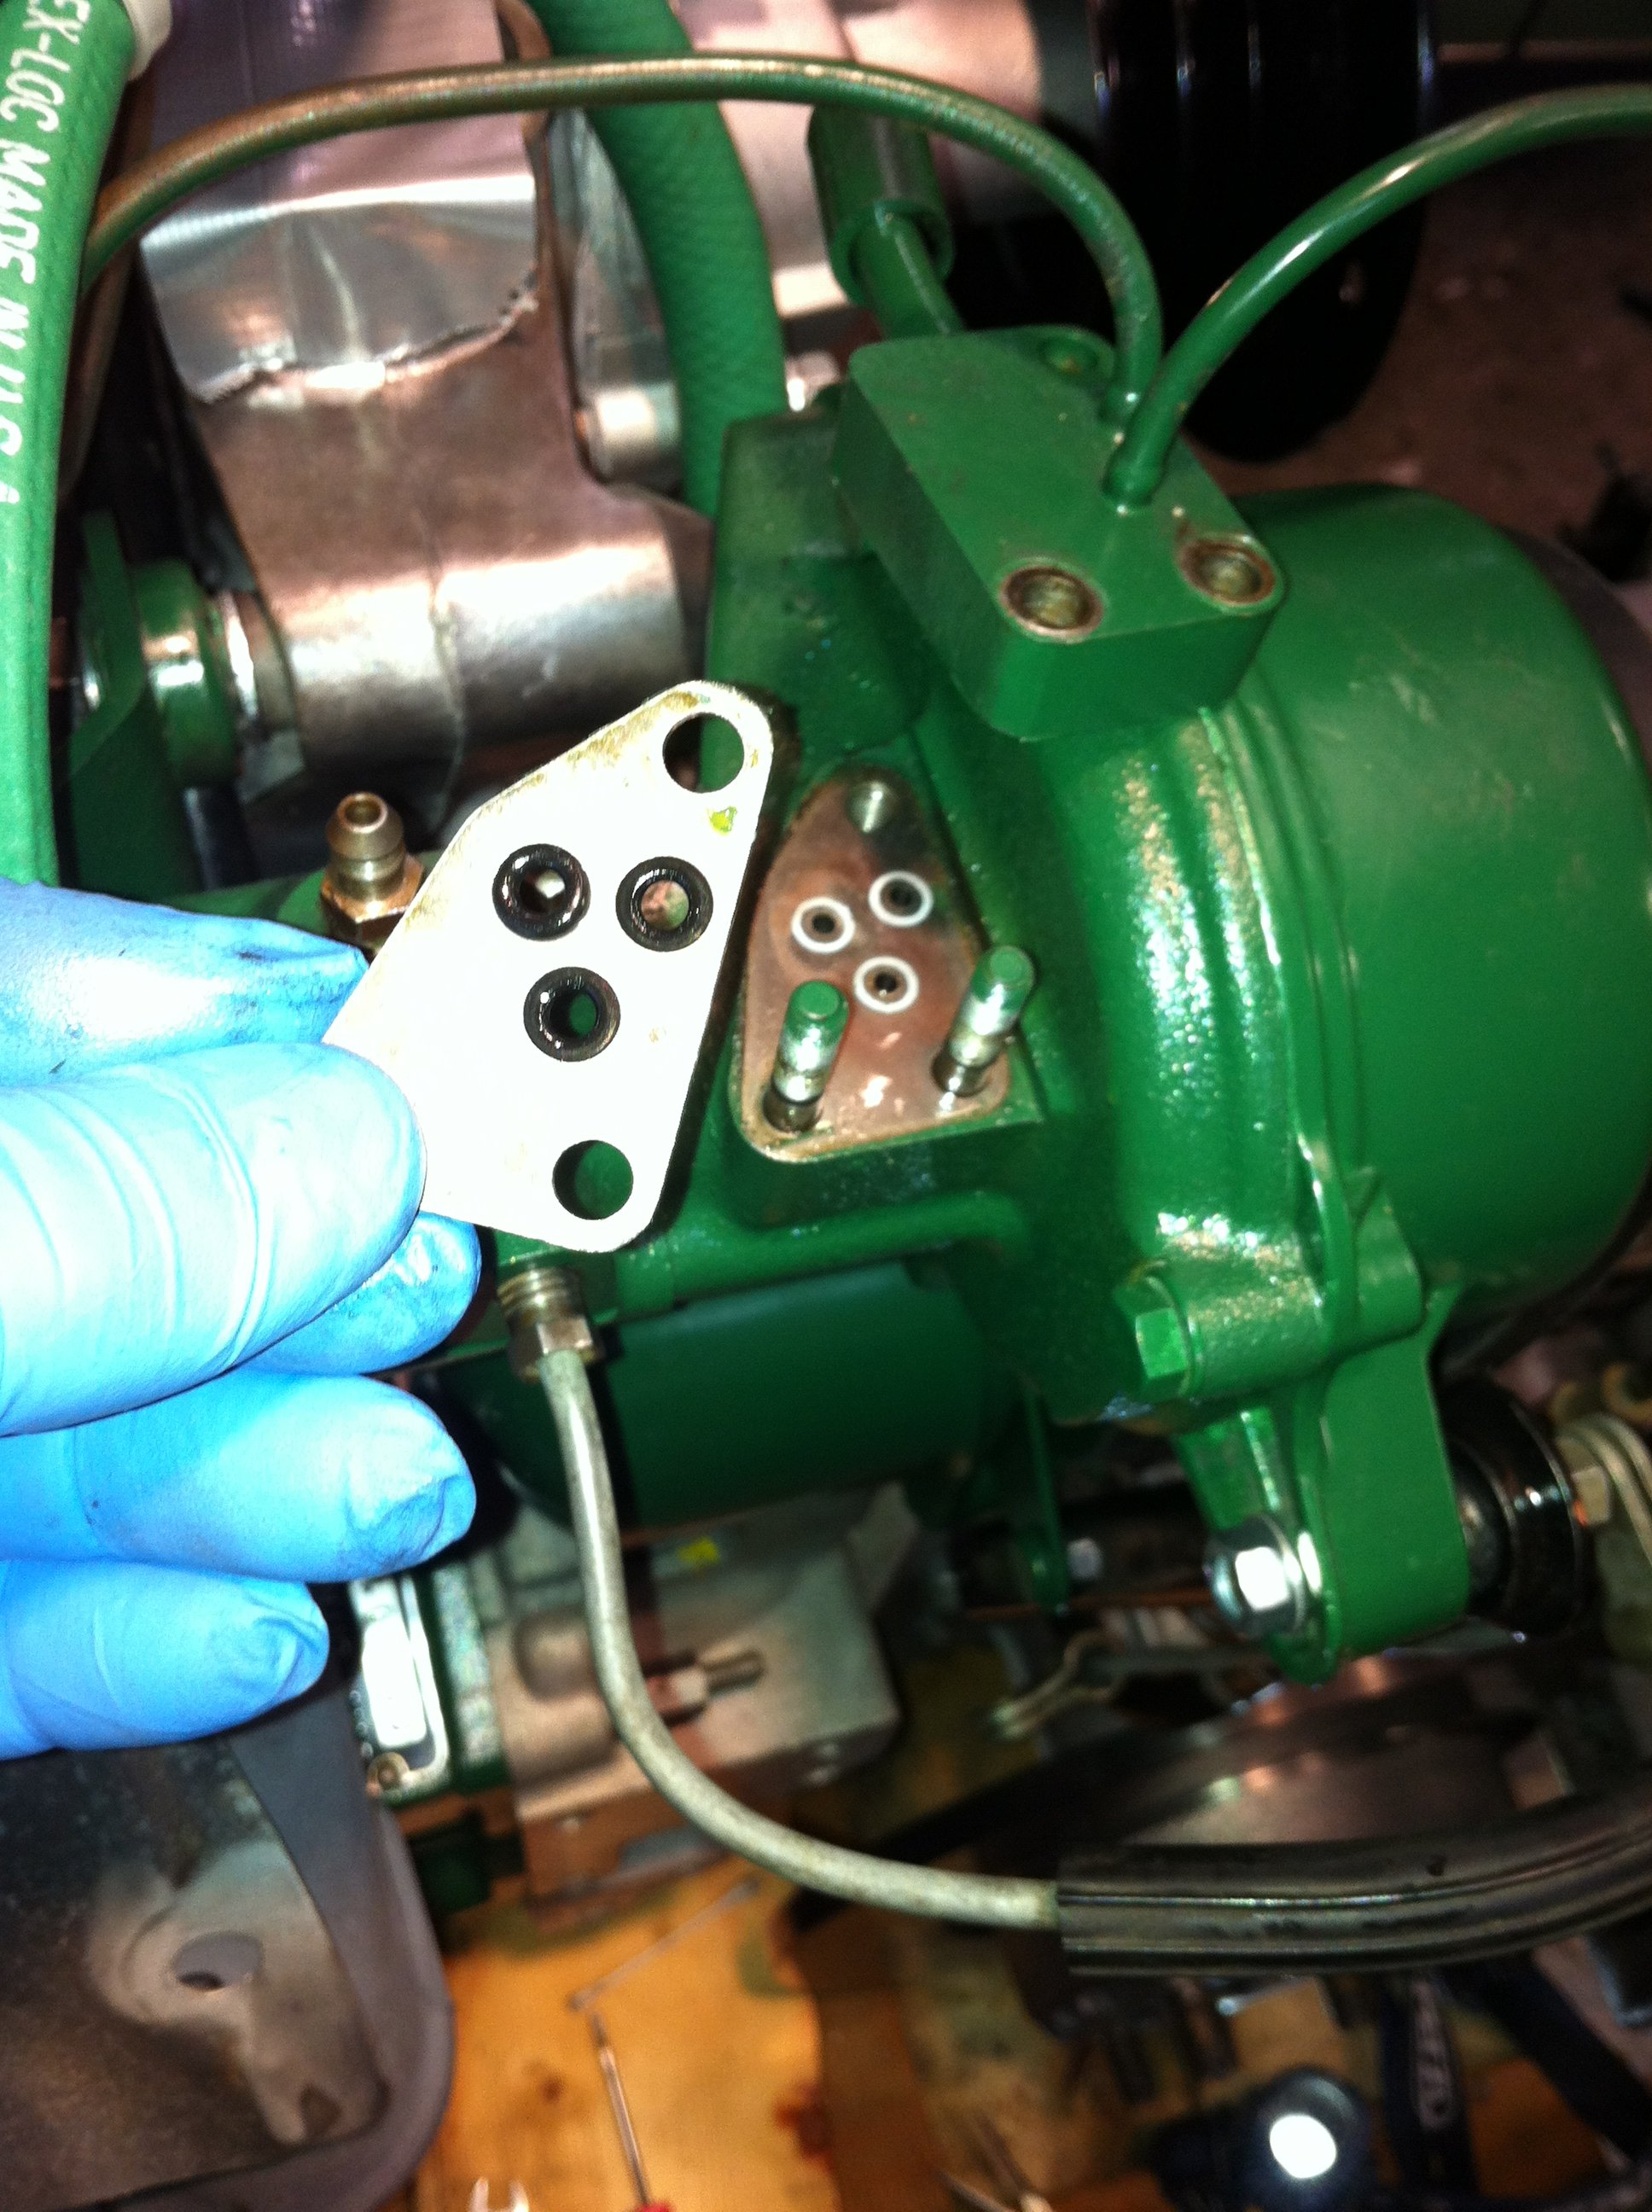 The o-rings in the hydraulic system are all old and hard